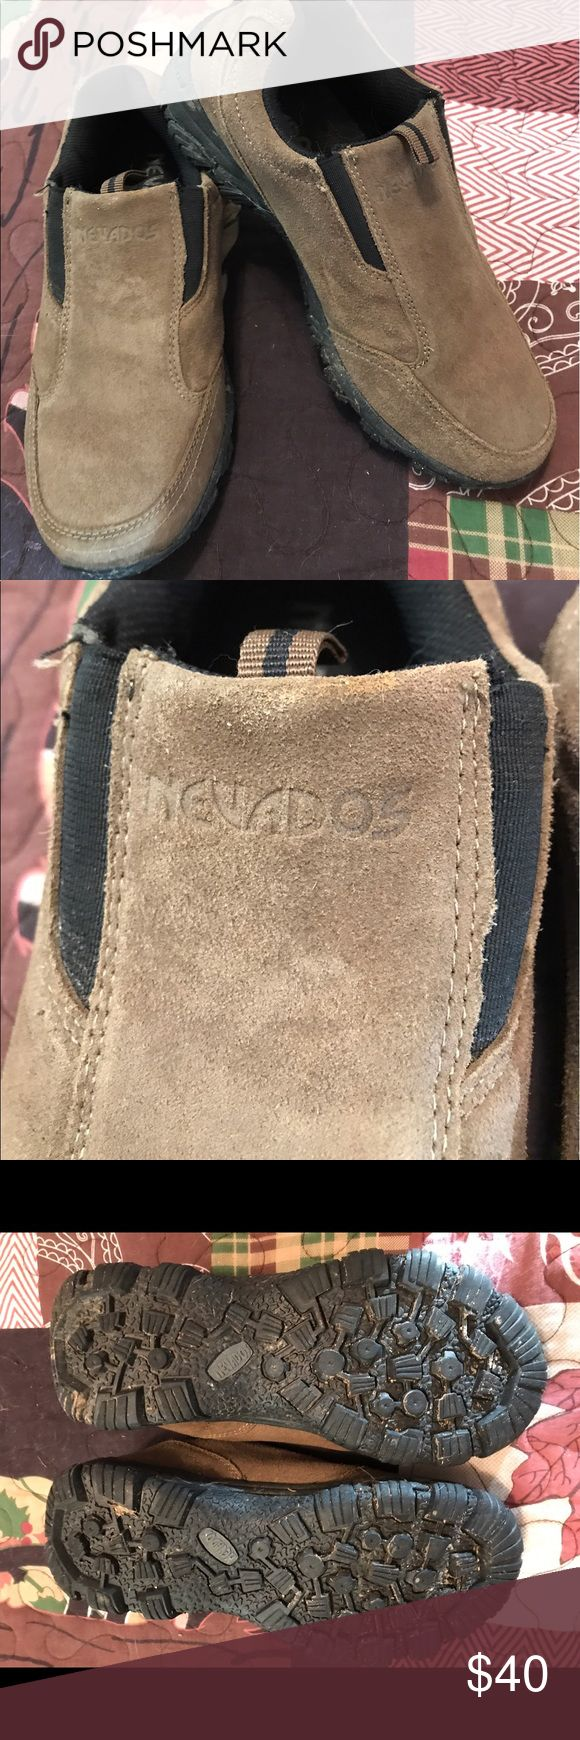 Nevados slip on suede shoes These are slip on suede shoes. Only worn once because they were too small and really not his style. nevados Shoes Loafers & Slip-Ons